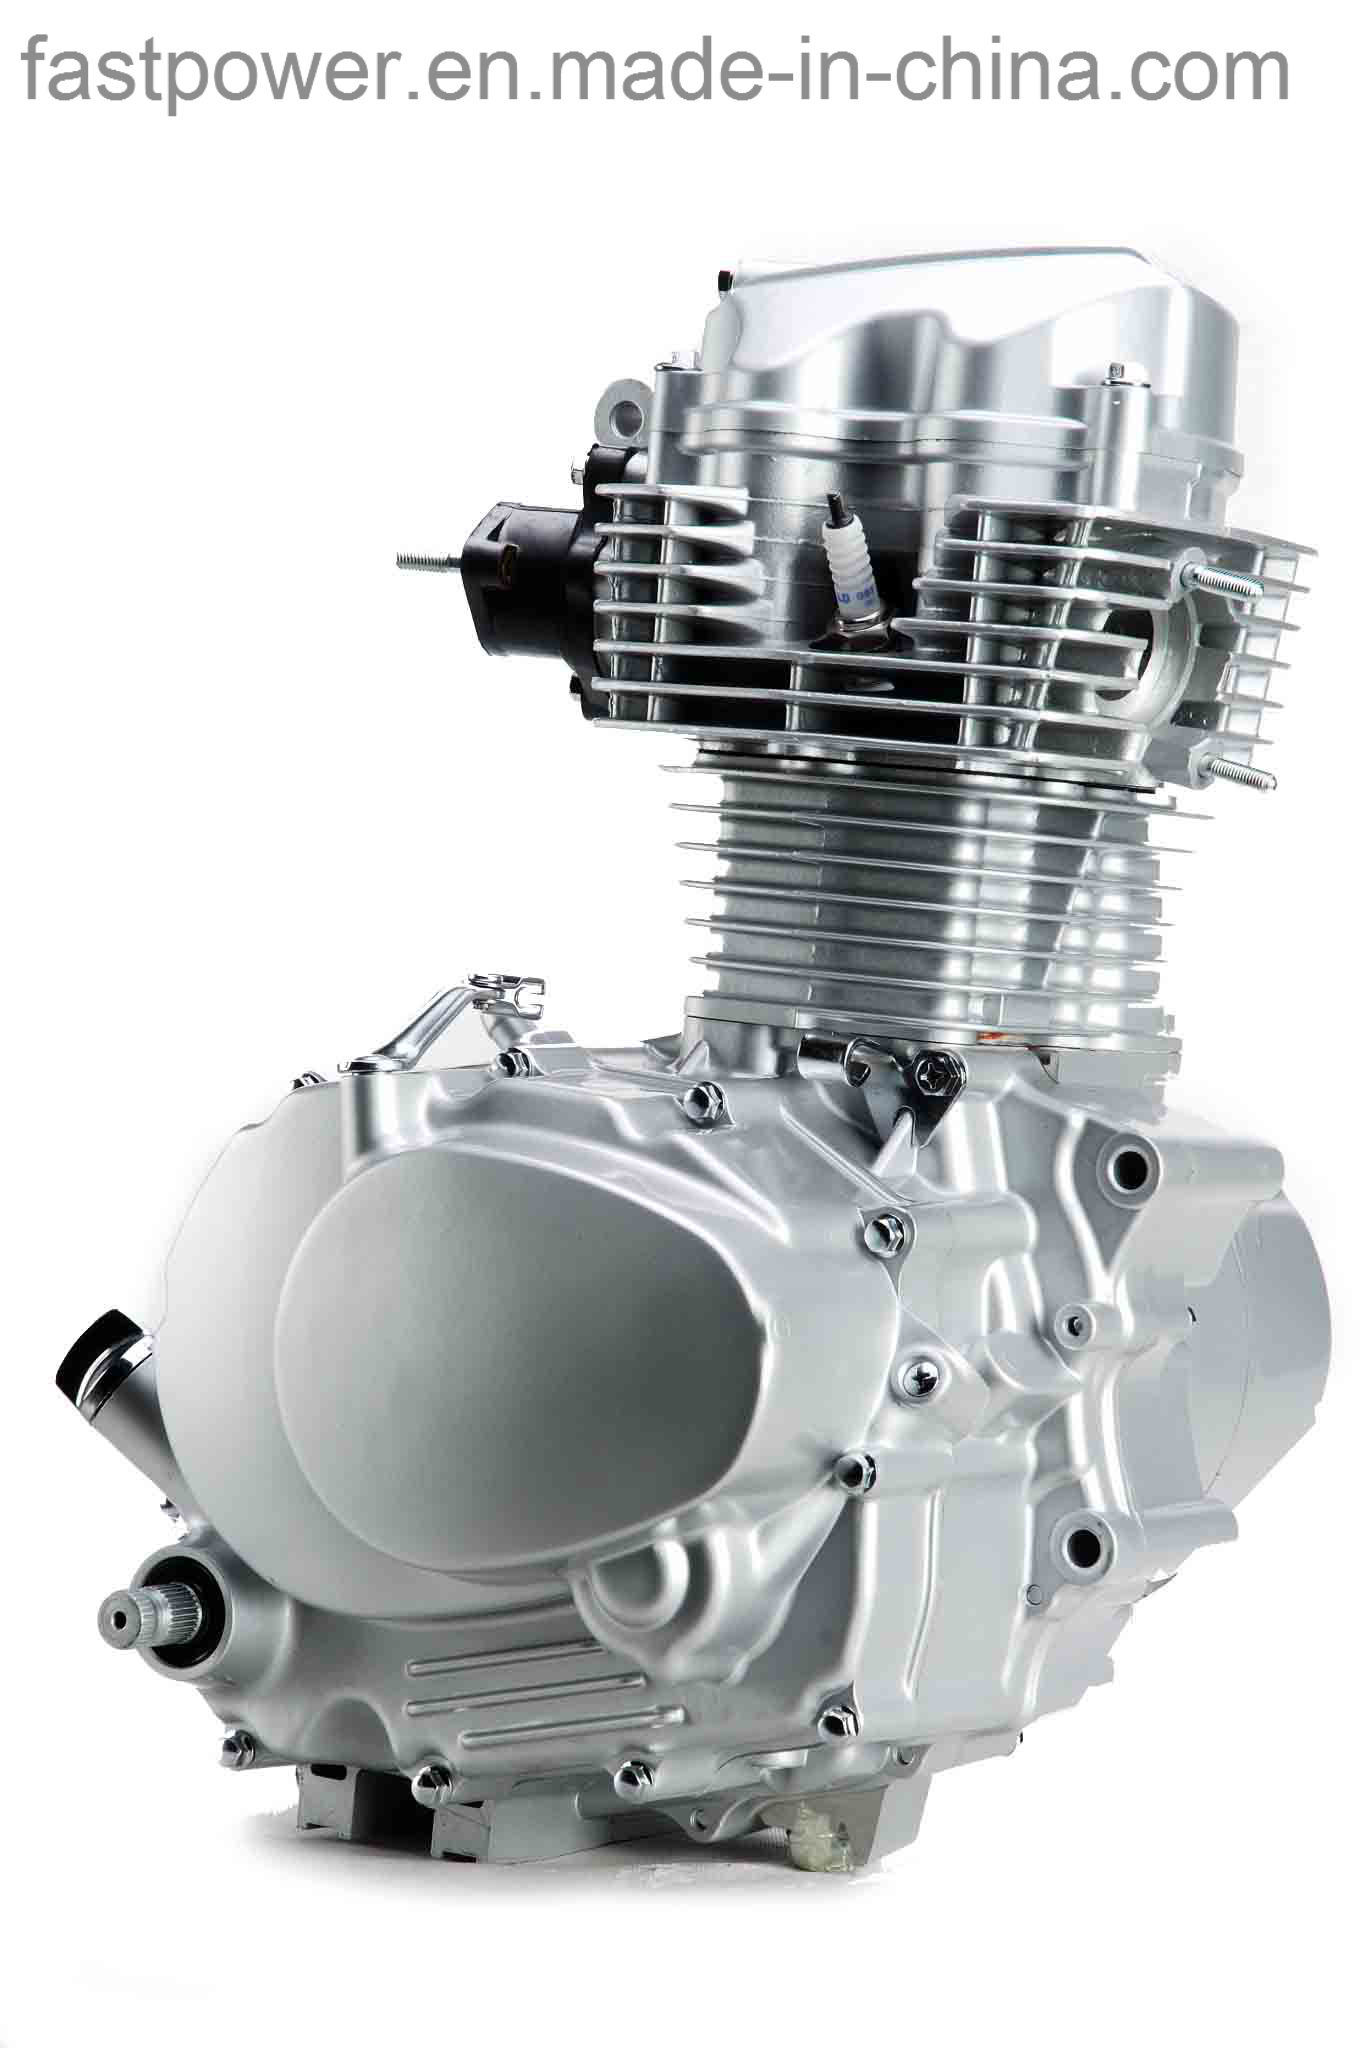 Engine for Motorcycle Cg125